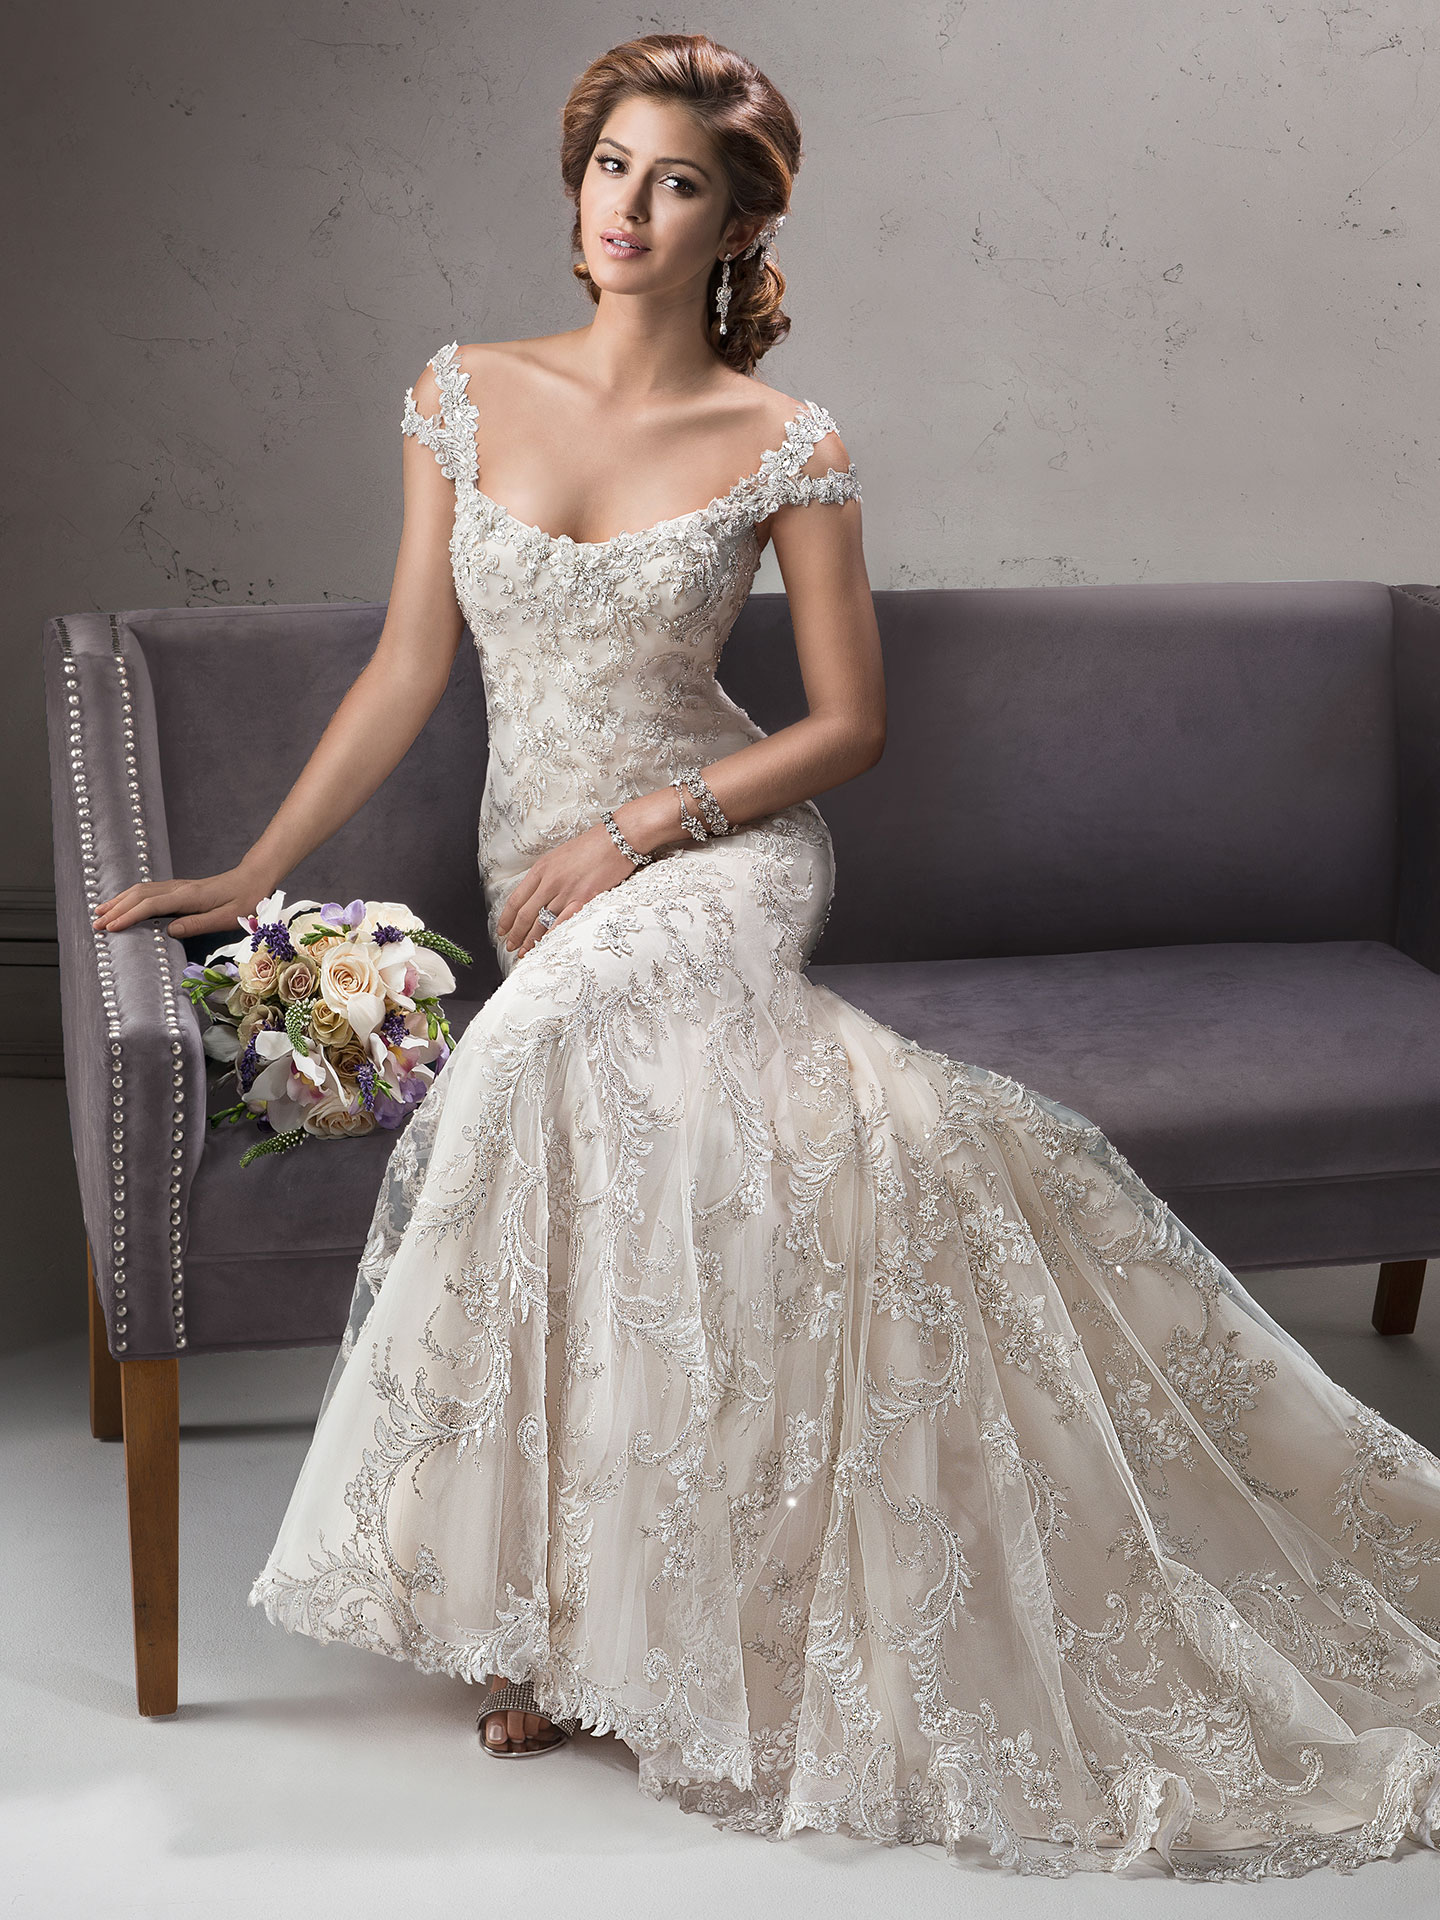 Canapes and Gowns Inspired by International Weddings - Ettiene wedding dress by Sottero and Midgley